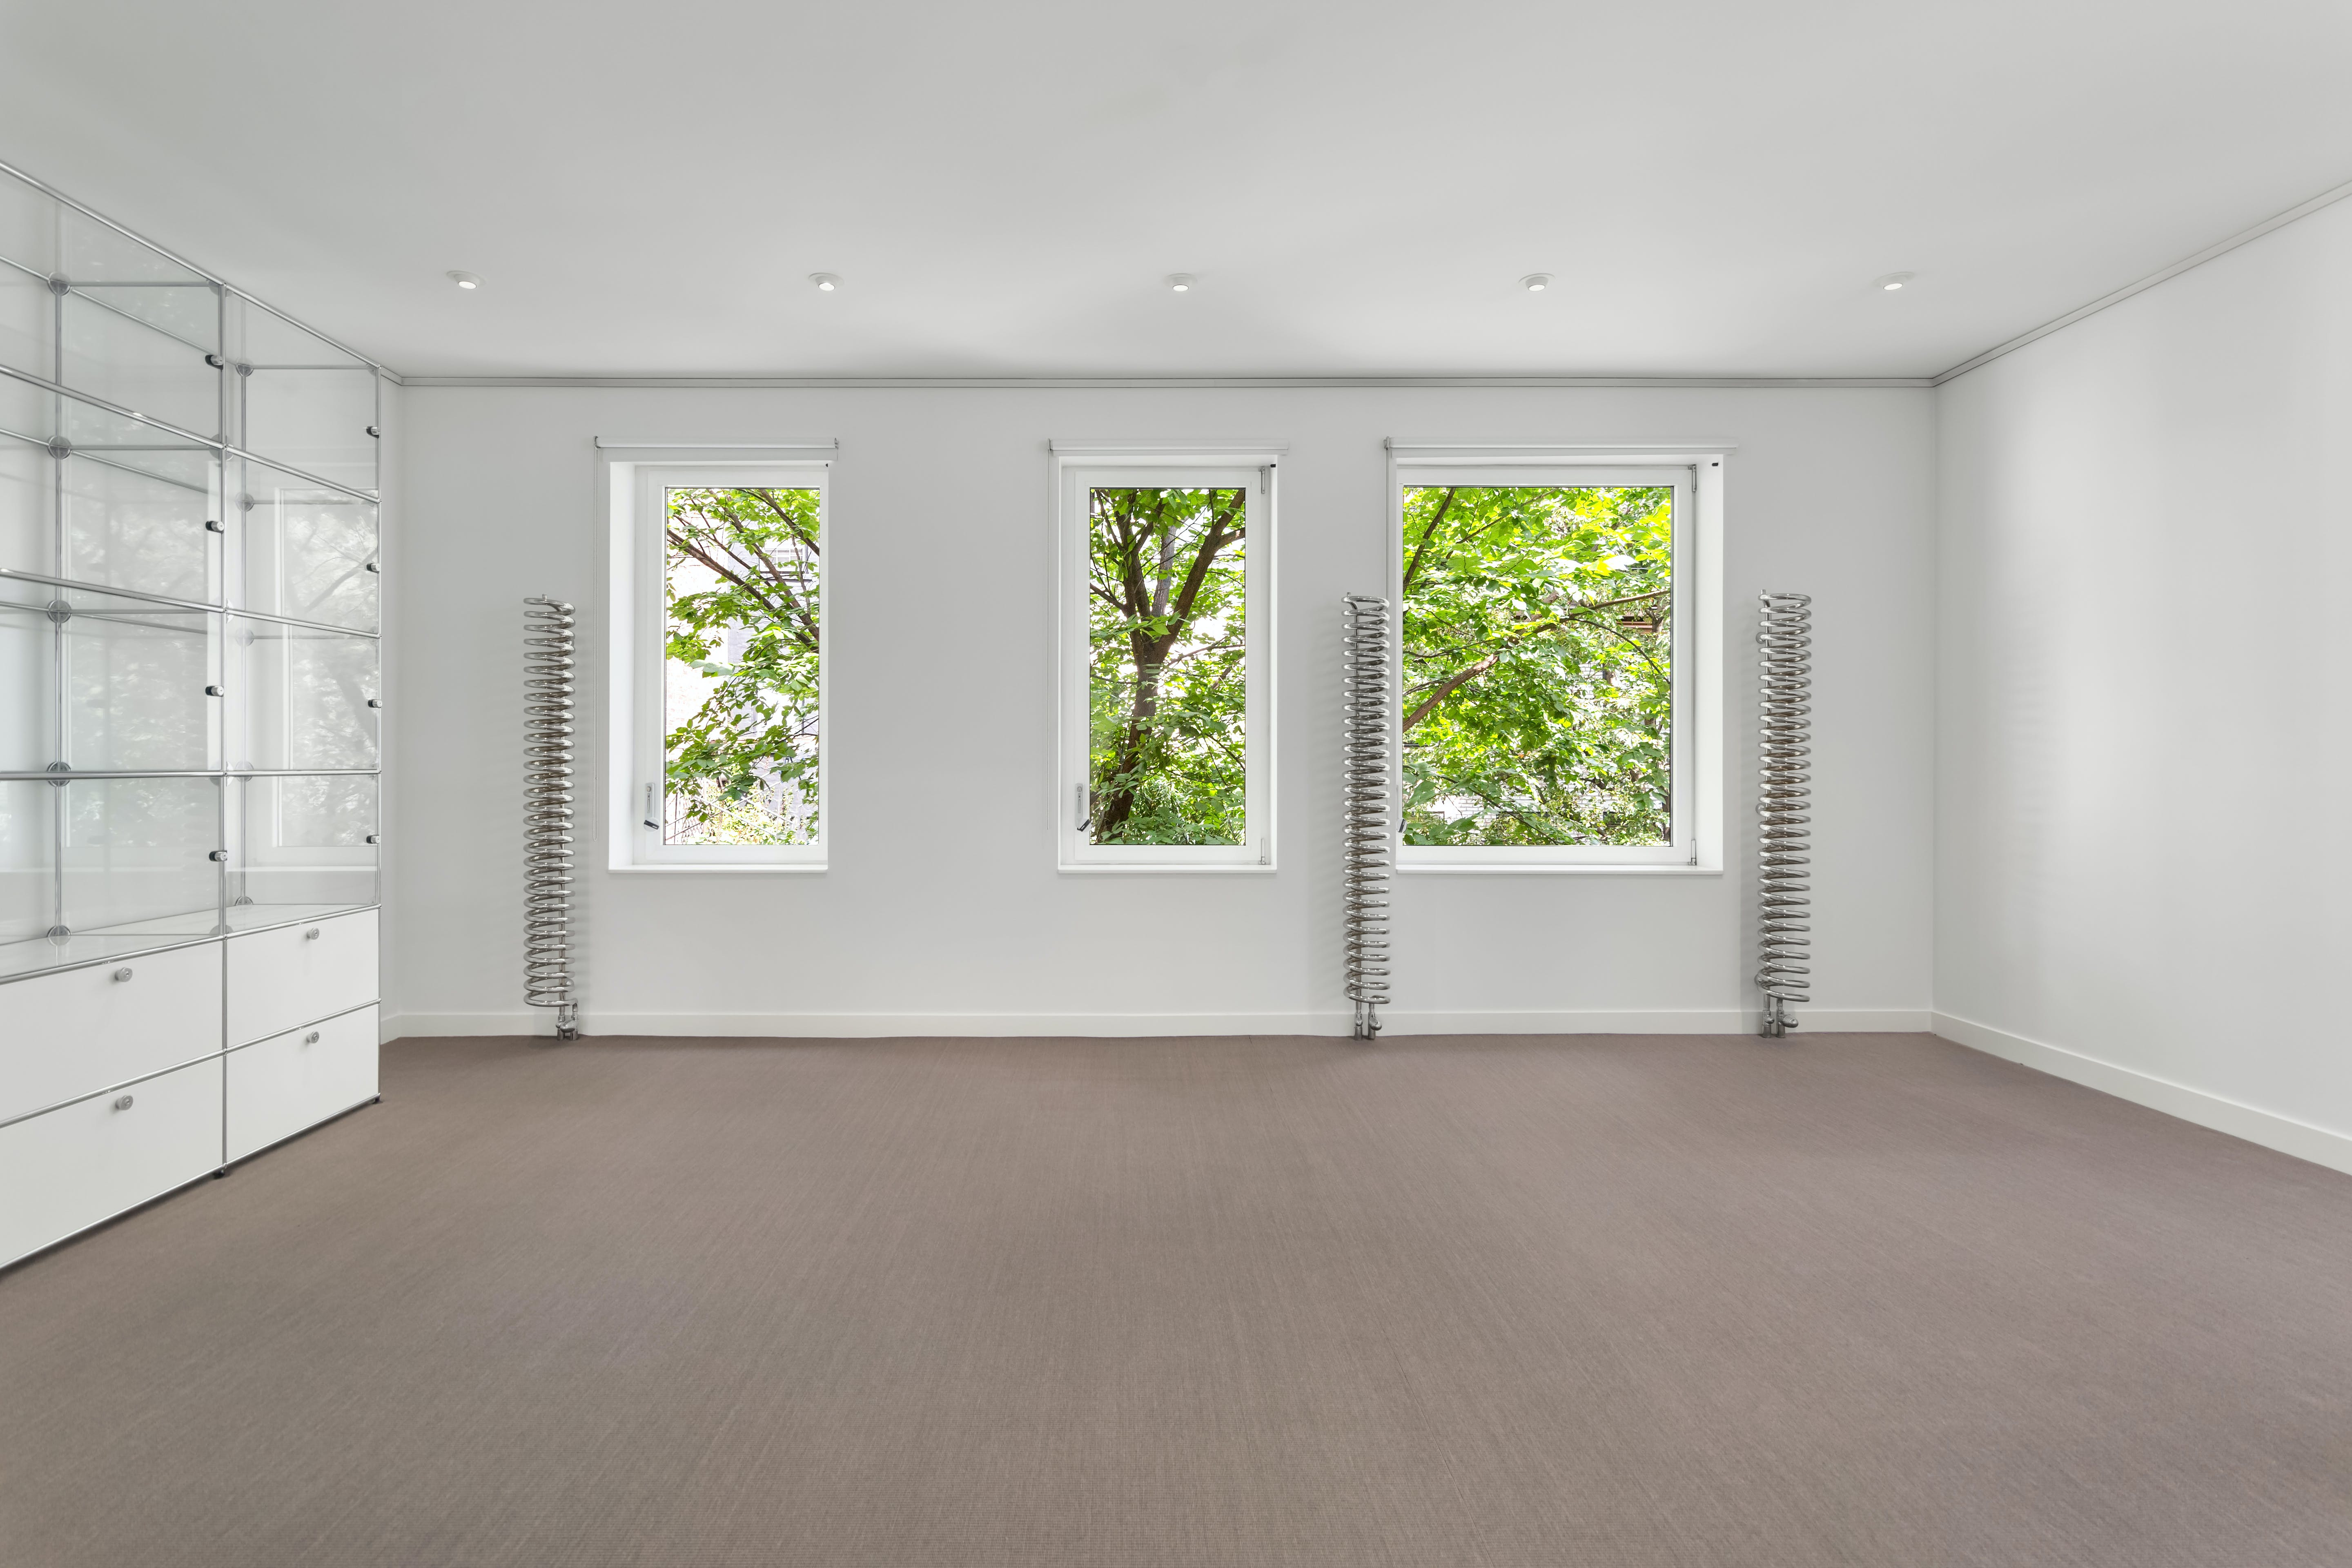 167 East 73rd Street  - 43a88703-21d9-4d31-8b43-5bc860f07760 - New York City Townhouse Real Estate